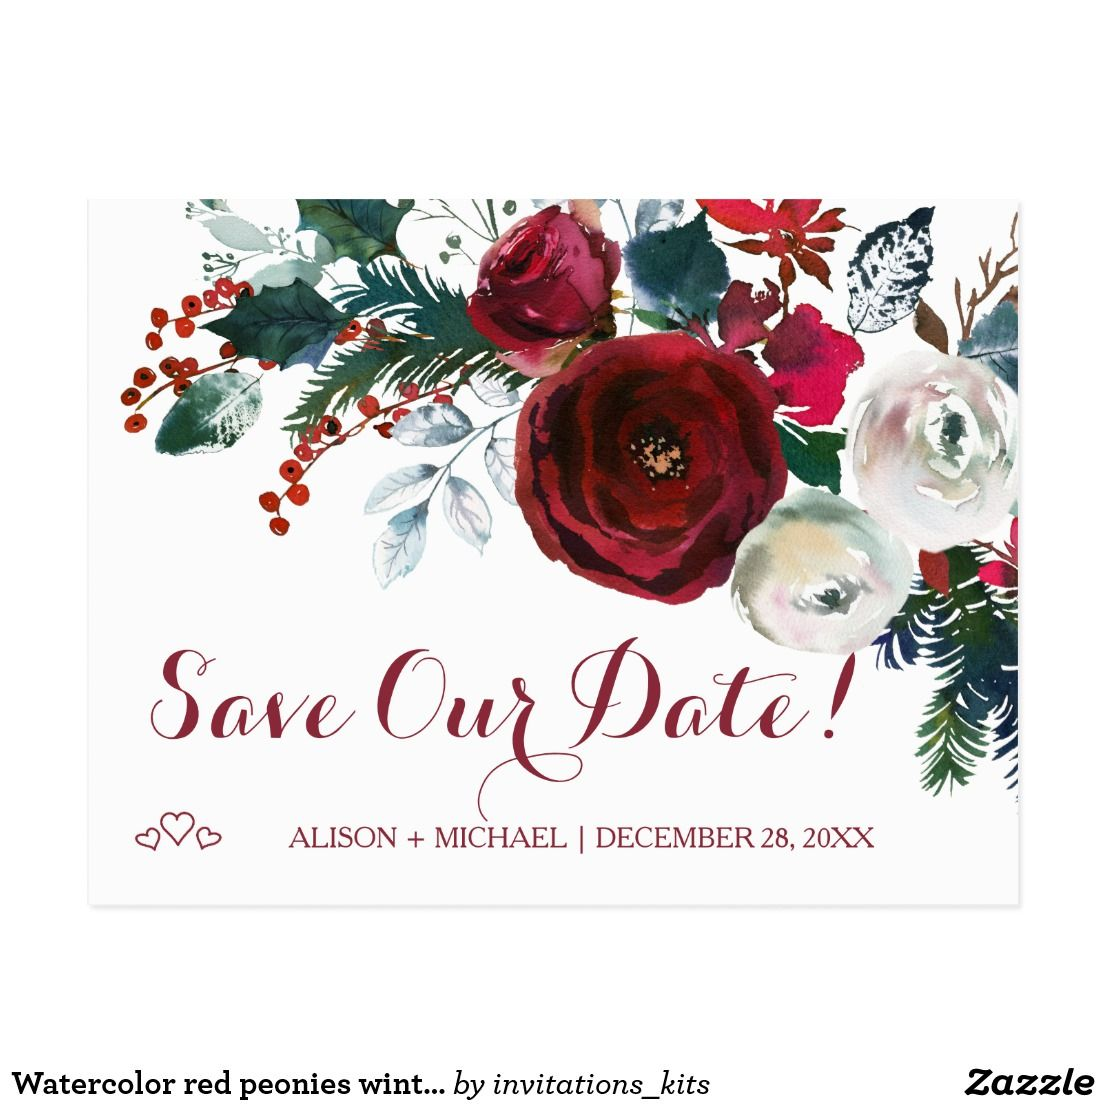 winter wedding save the date - Romeo.landinez.co